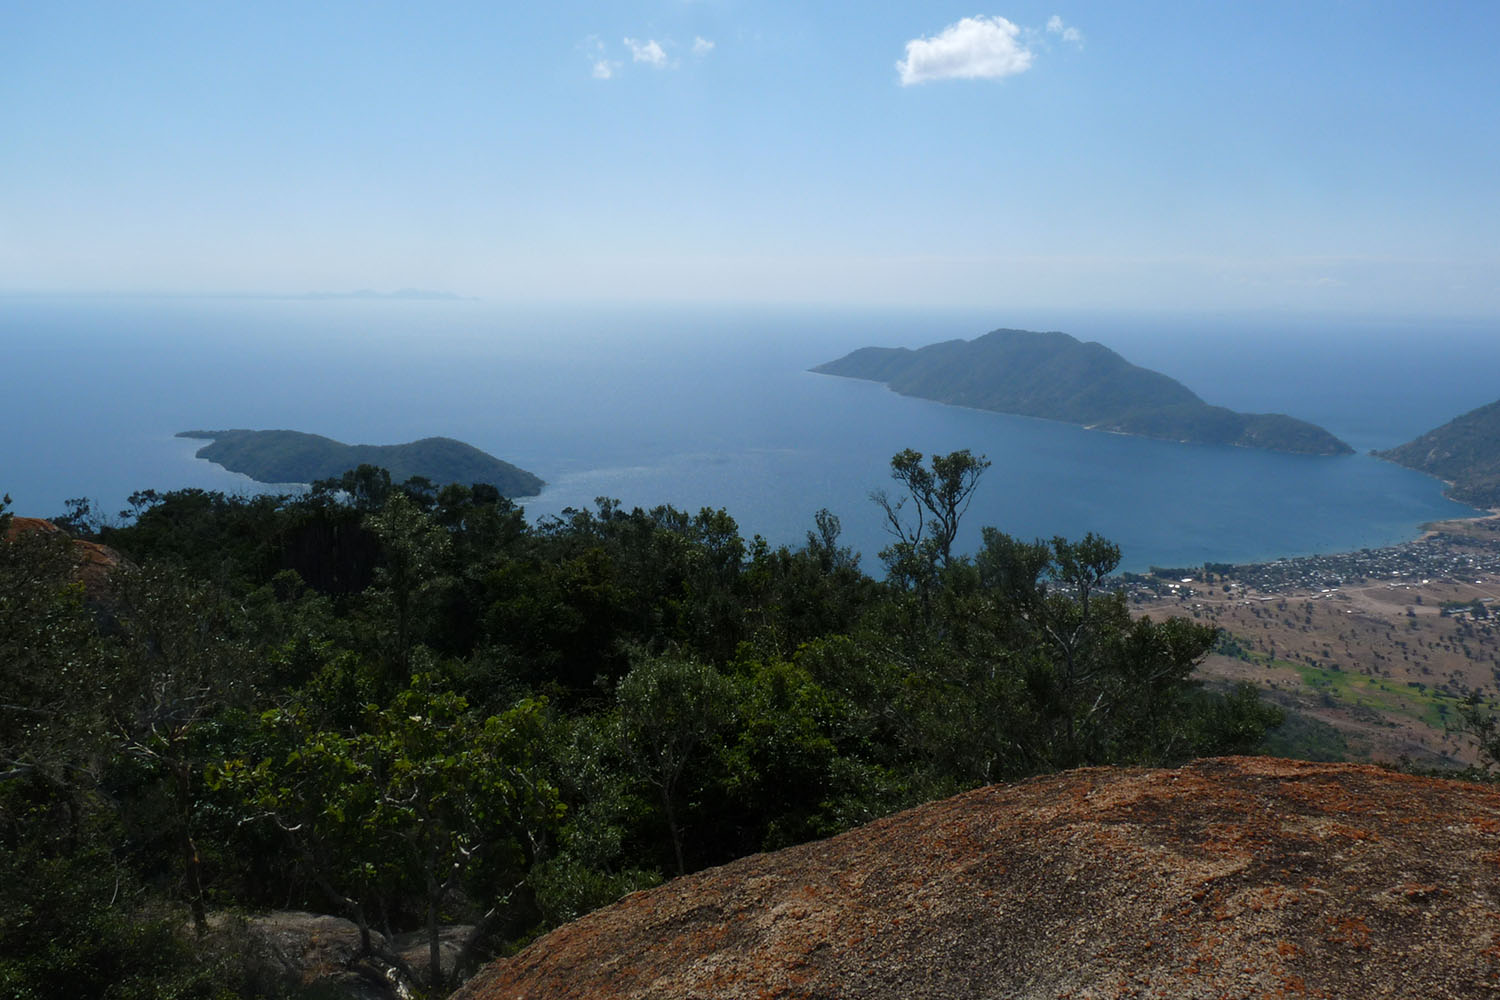 cape maclear malawi-points-of-interest-tours-malawian-style-malawi-adventures-experiences-specialist-tour-operator-clouds